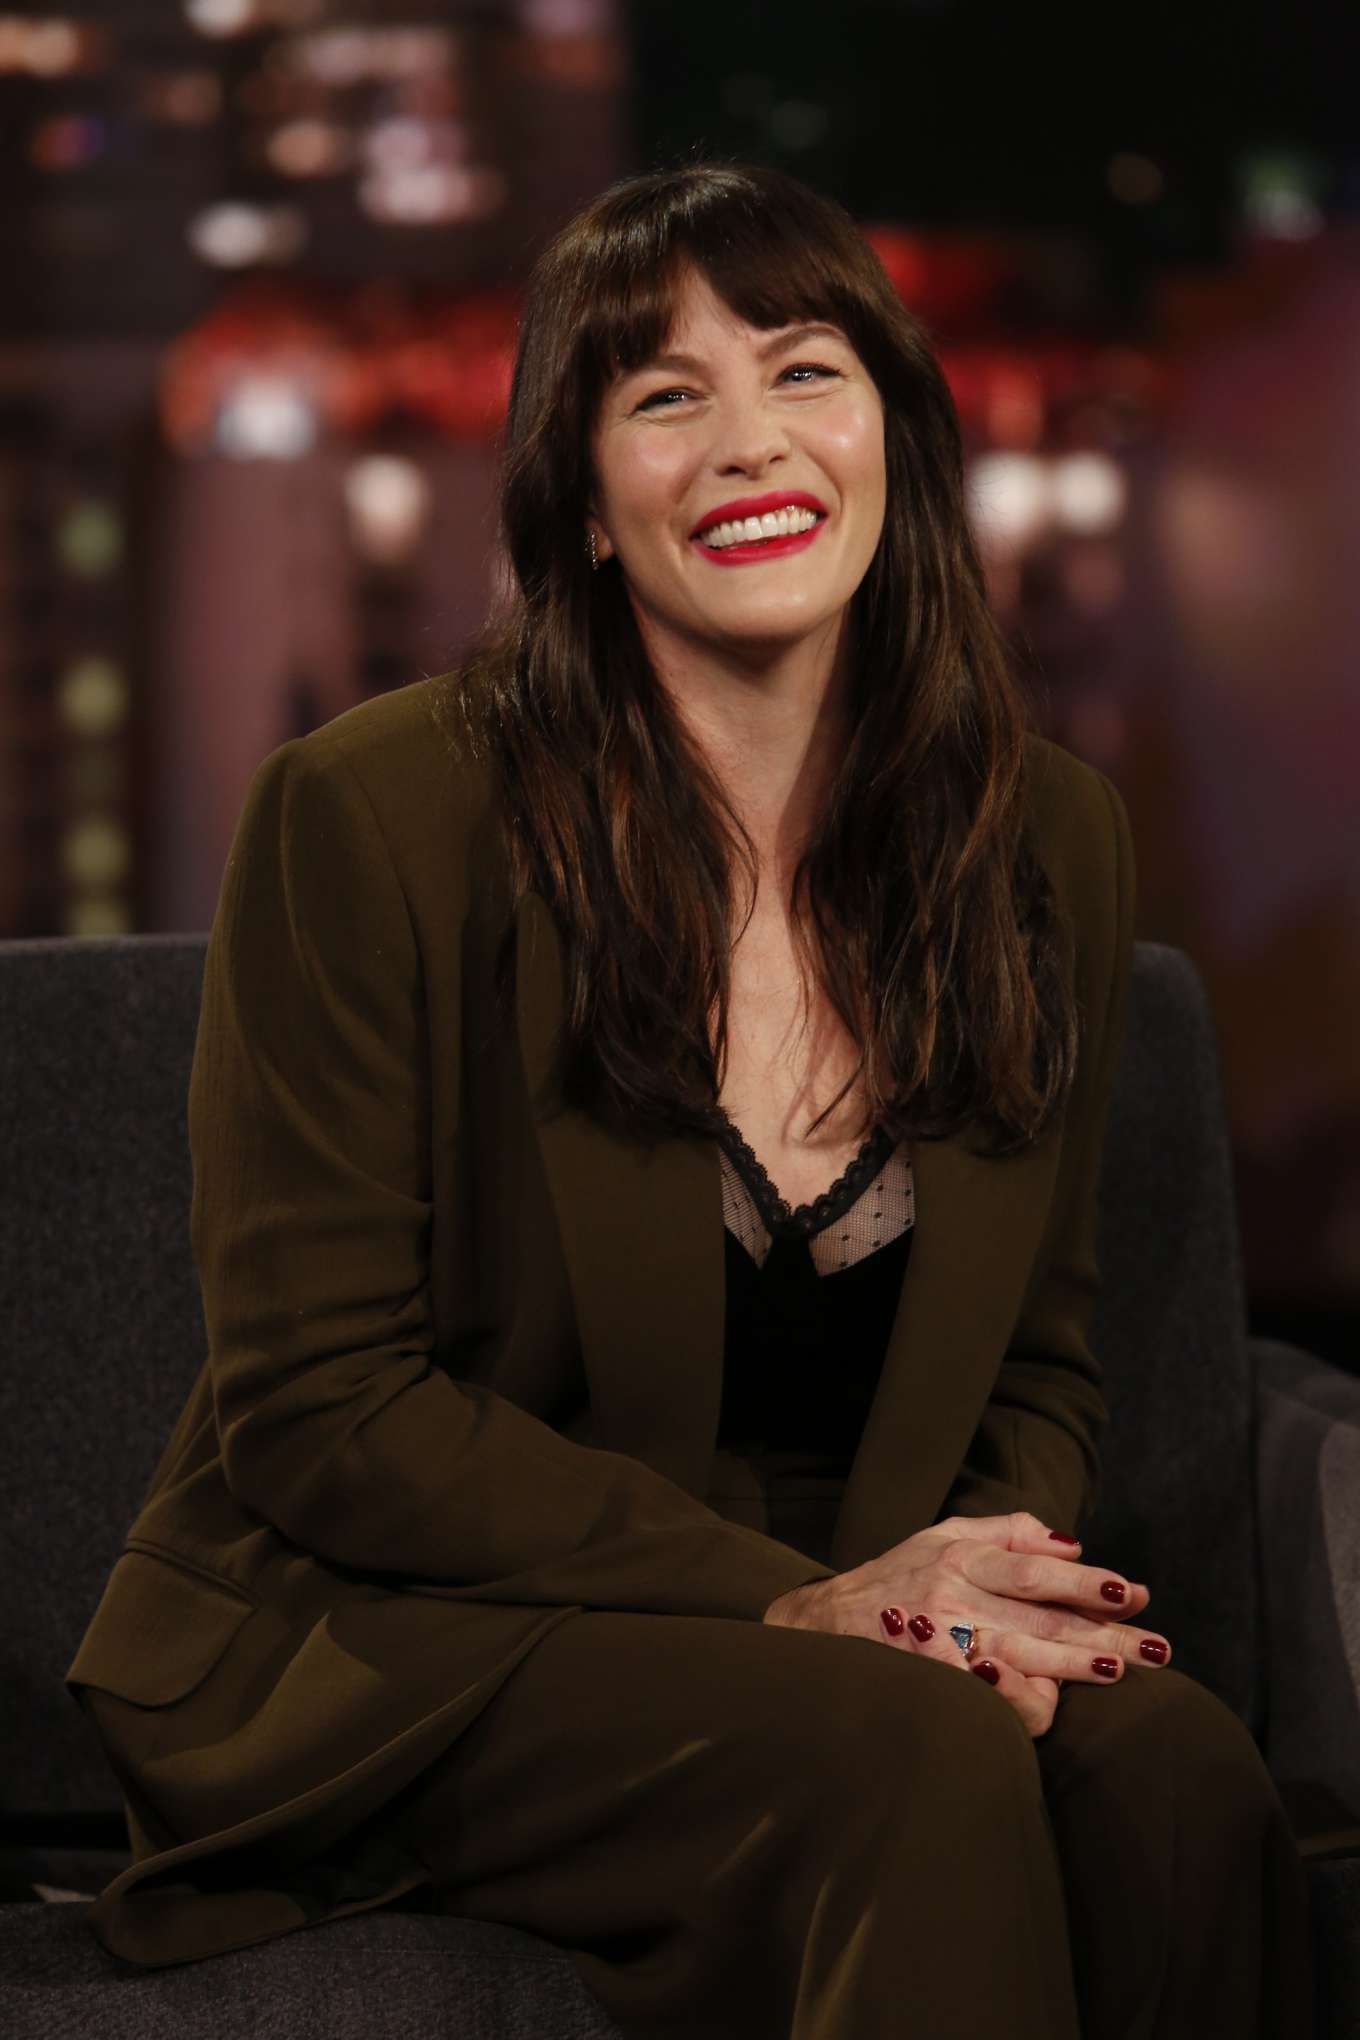 Liv Tyler - On 'Jimmy Kimmel Live!' in Los Angeles